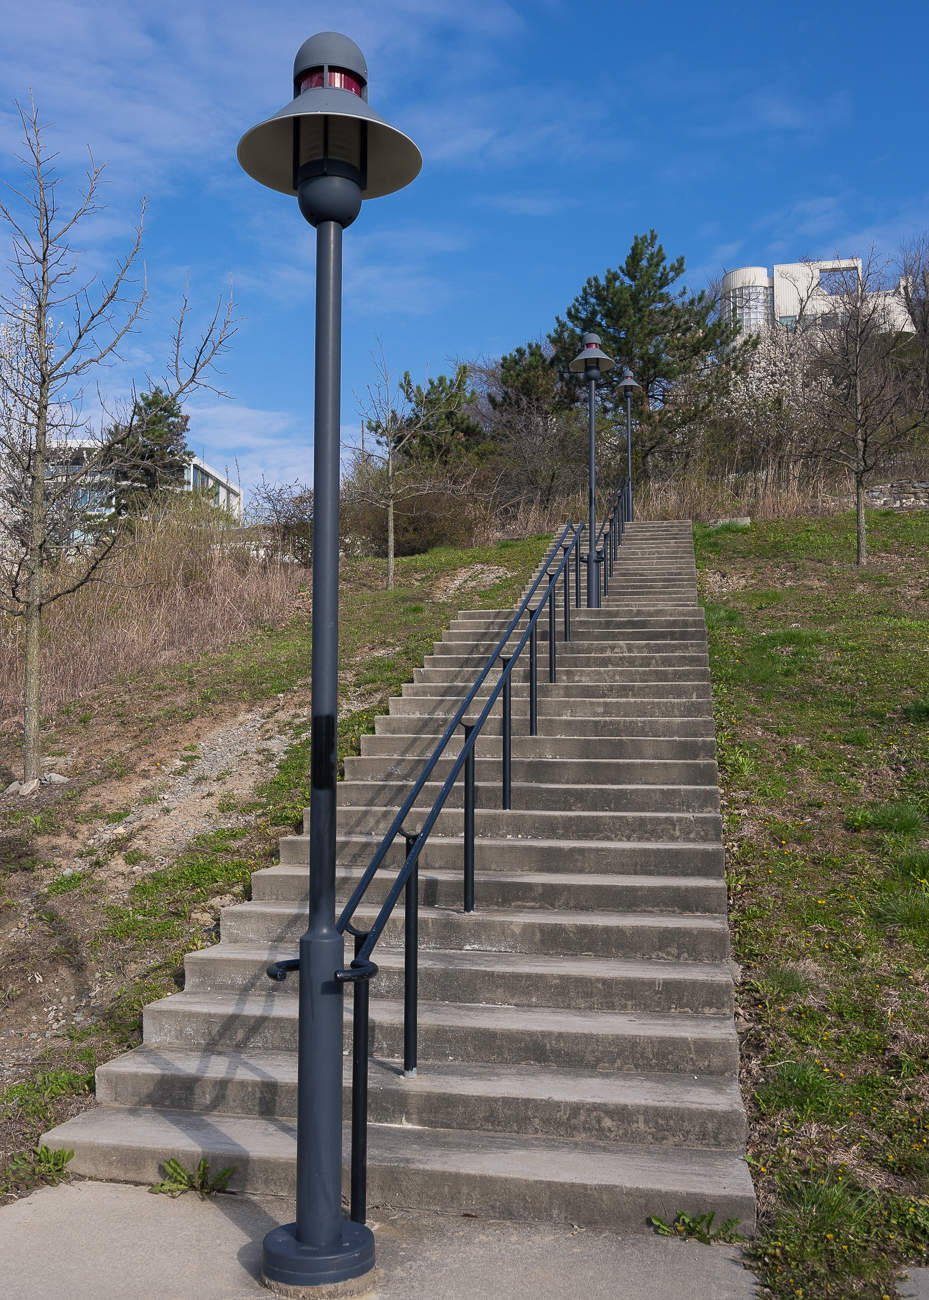 The stairs leading up from the terrace once led to the city's only water reservoir (until the 1870s). The reservoir was abandoned in 1907 due to pumping stations positioned elsewhere around the city. / Image: Phil Armstrong, Cincinnati Refined // Published: 4.13.18